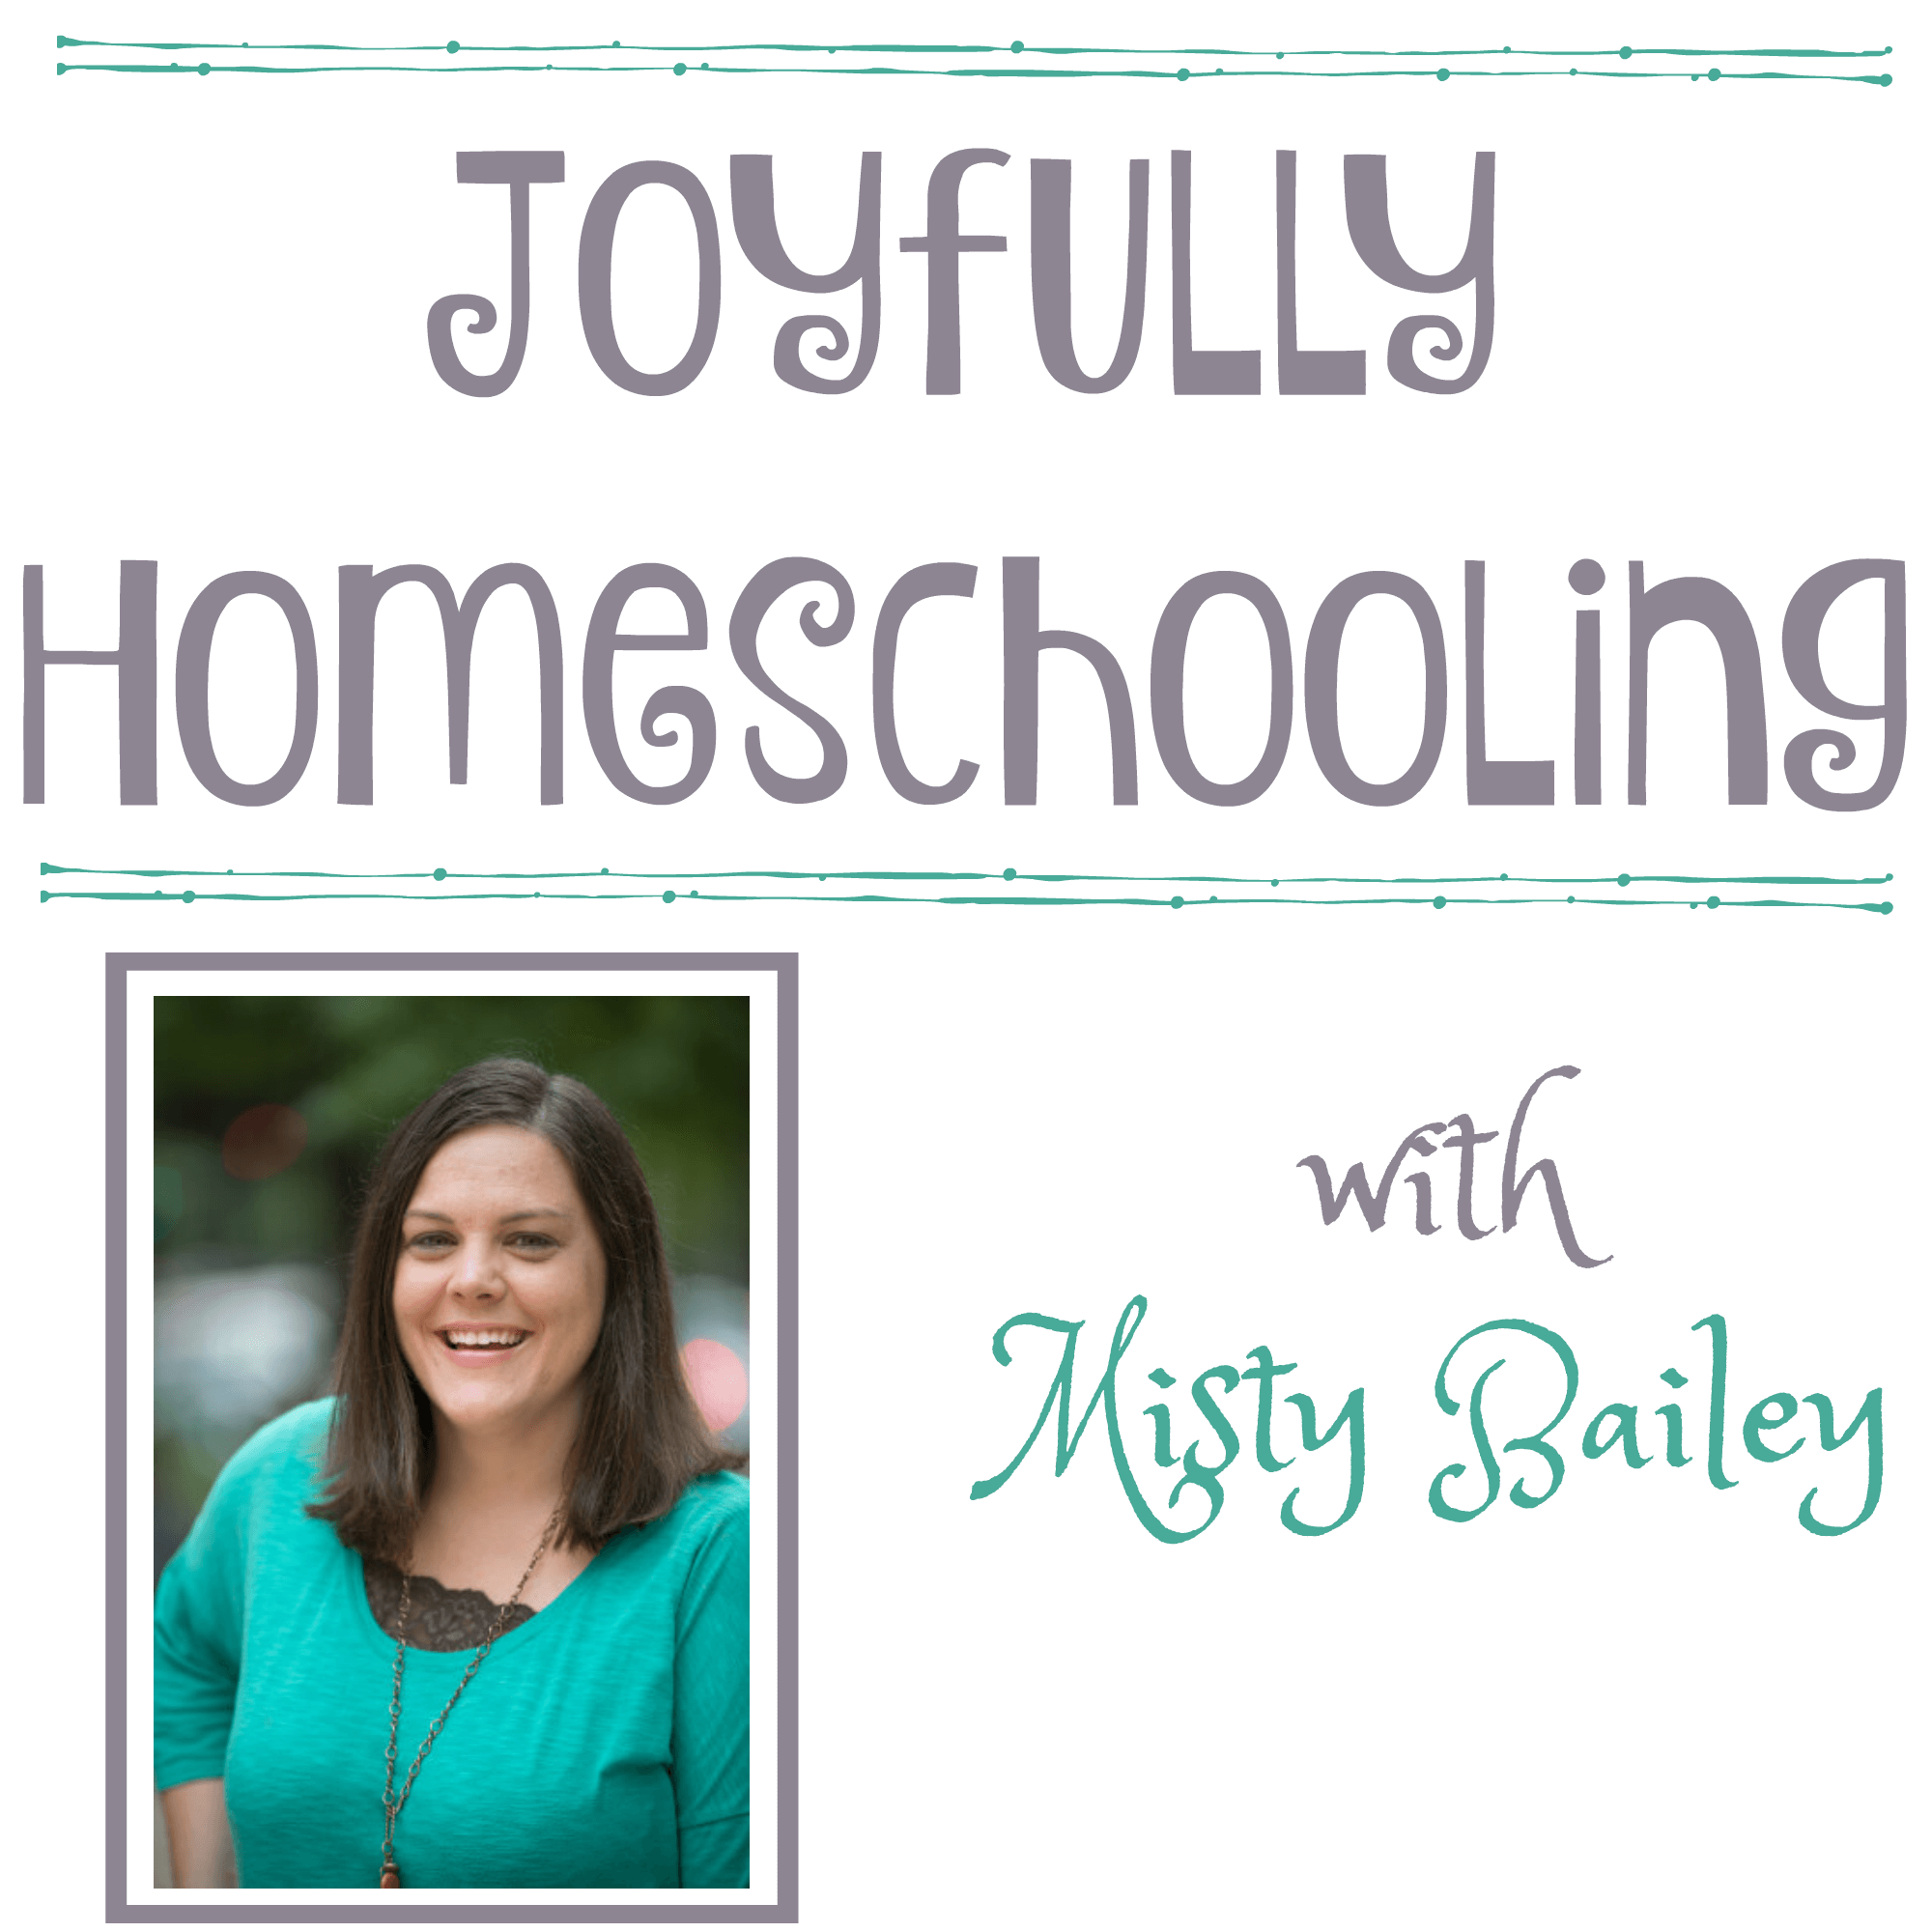 The Joyfully Homeschooling podcast is here to encourage and inspire you on your homeschool journey by providing practical tips for real life homeschooling. Through real stories, real struggles, and real life, Misty and her guests share how to embrace imperfection and strive for a more joyful homeschool.